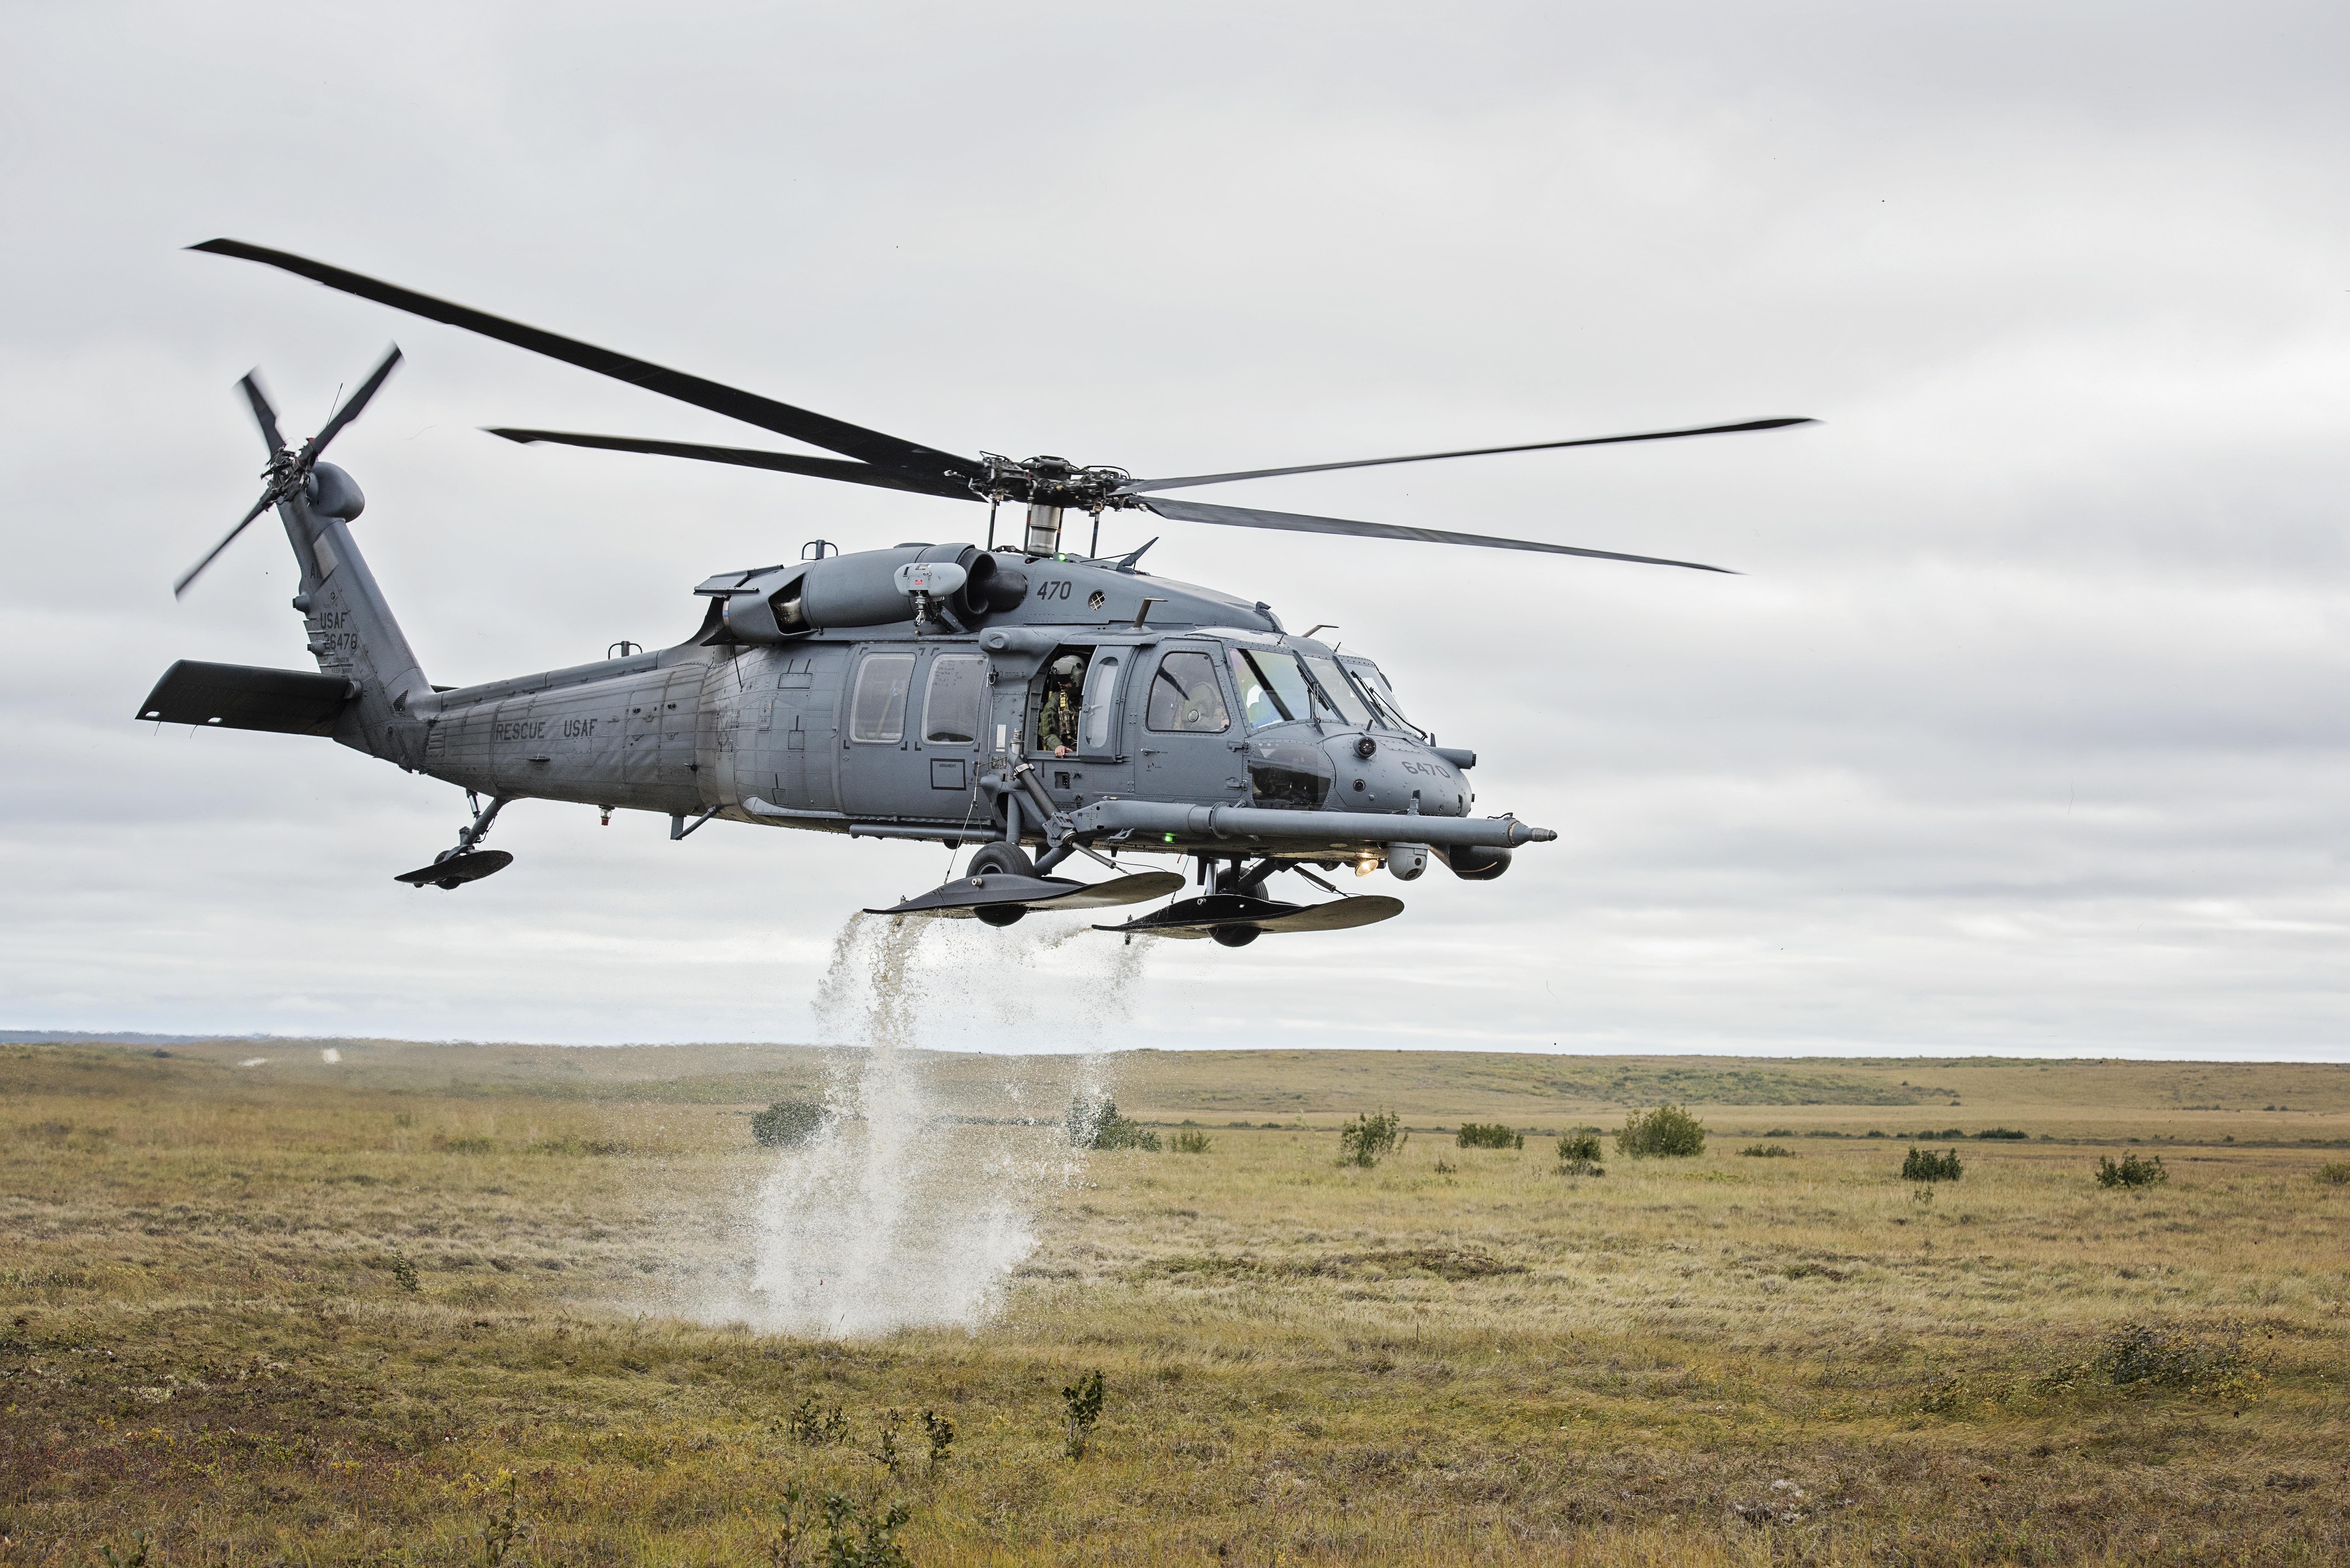 Free download high resolution image - free image free photo free stock image public domain picture -An HH-60 Pave Hawk helicopter